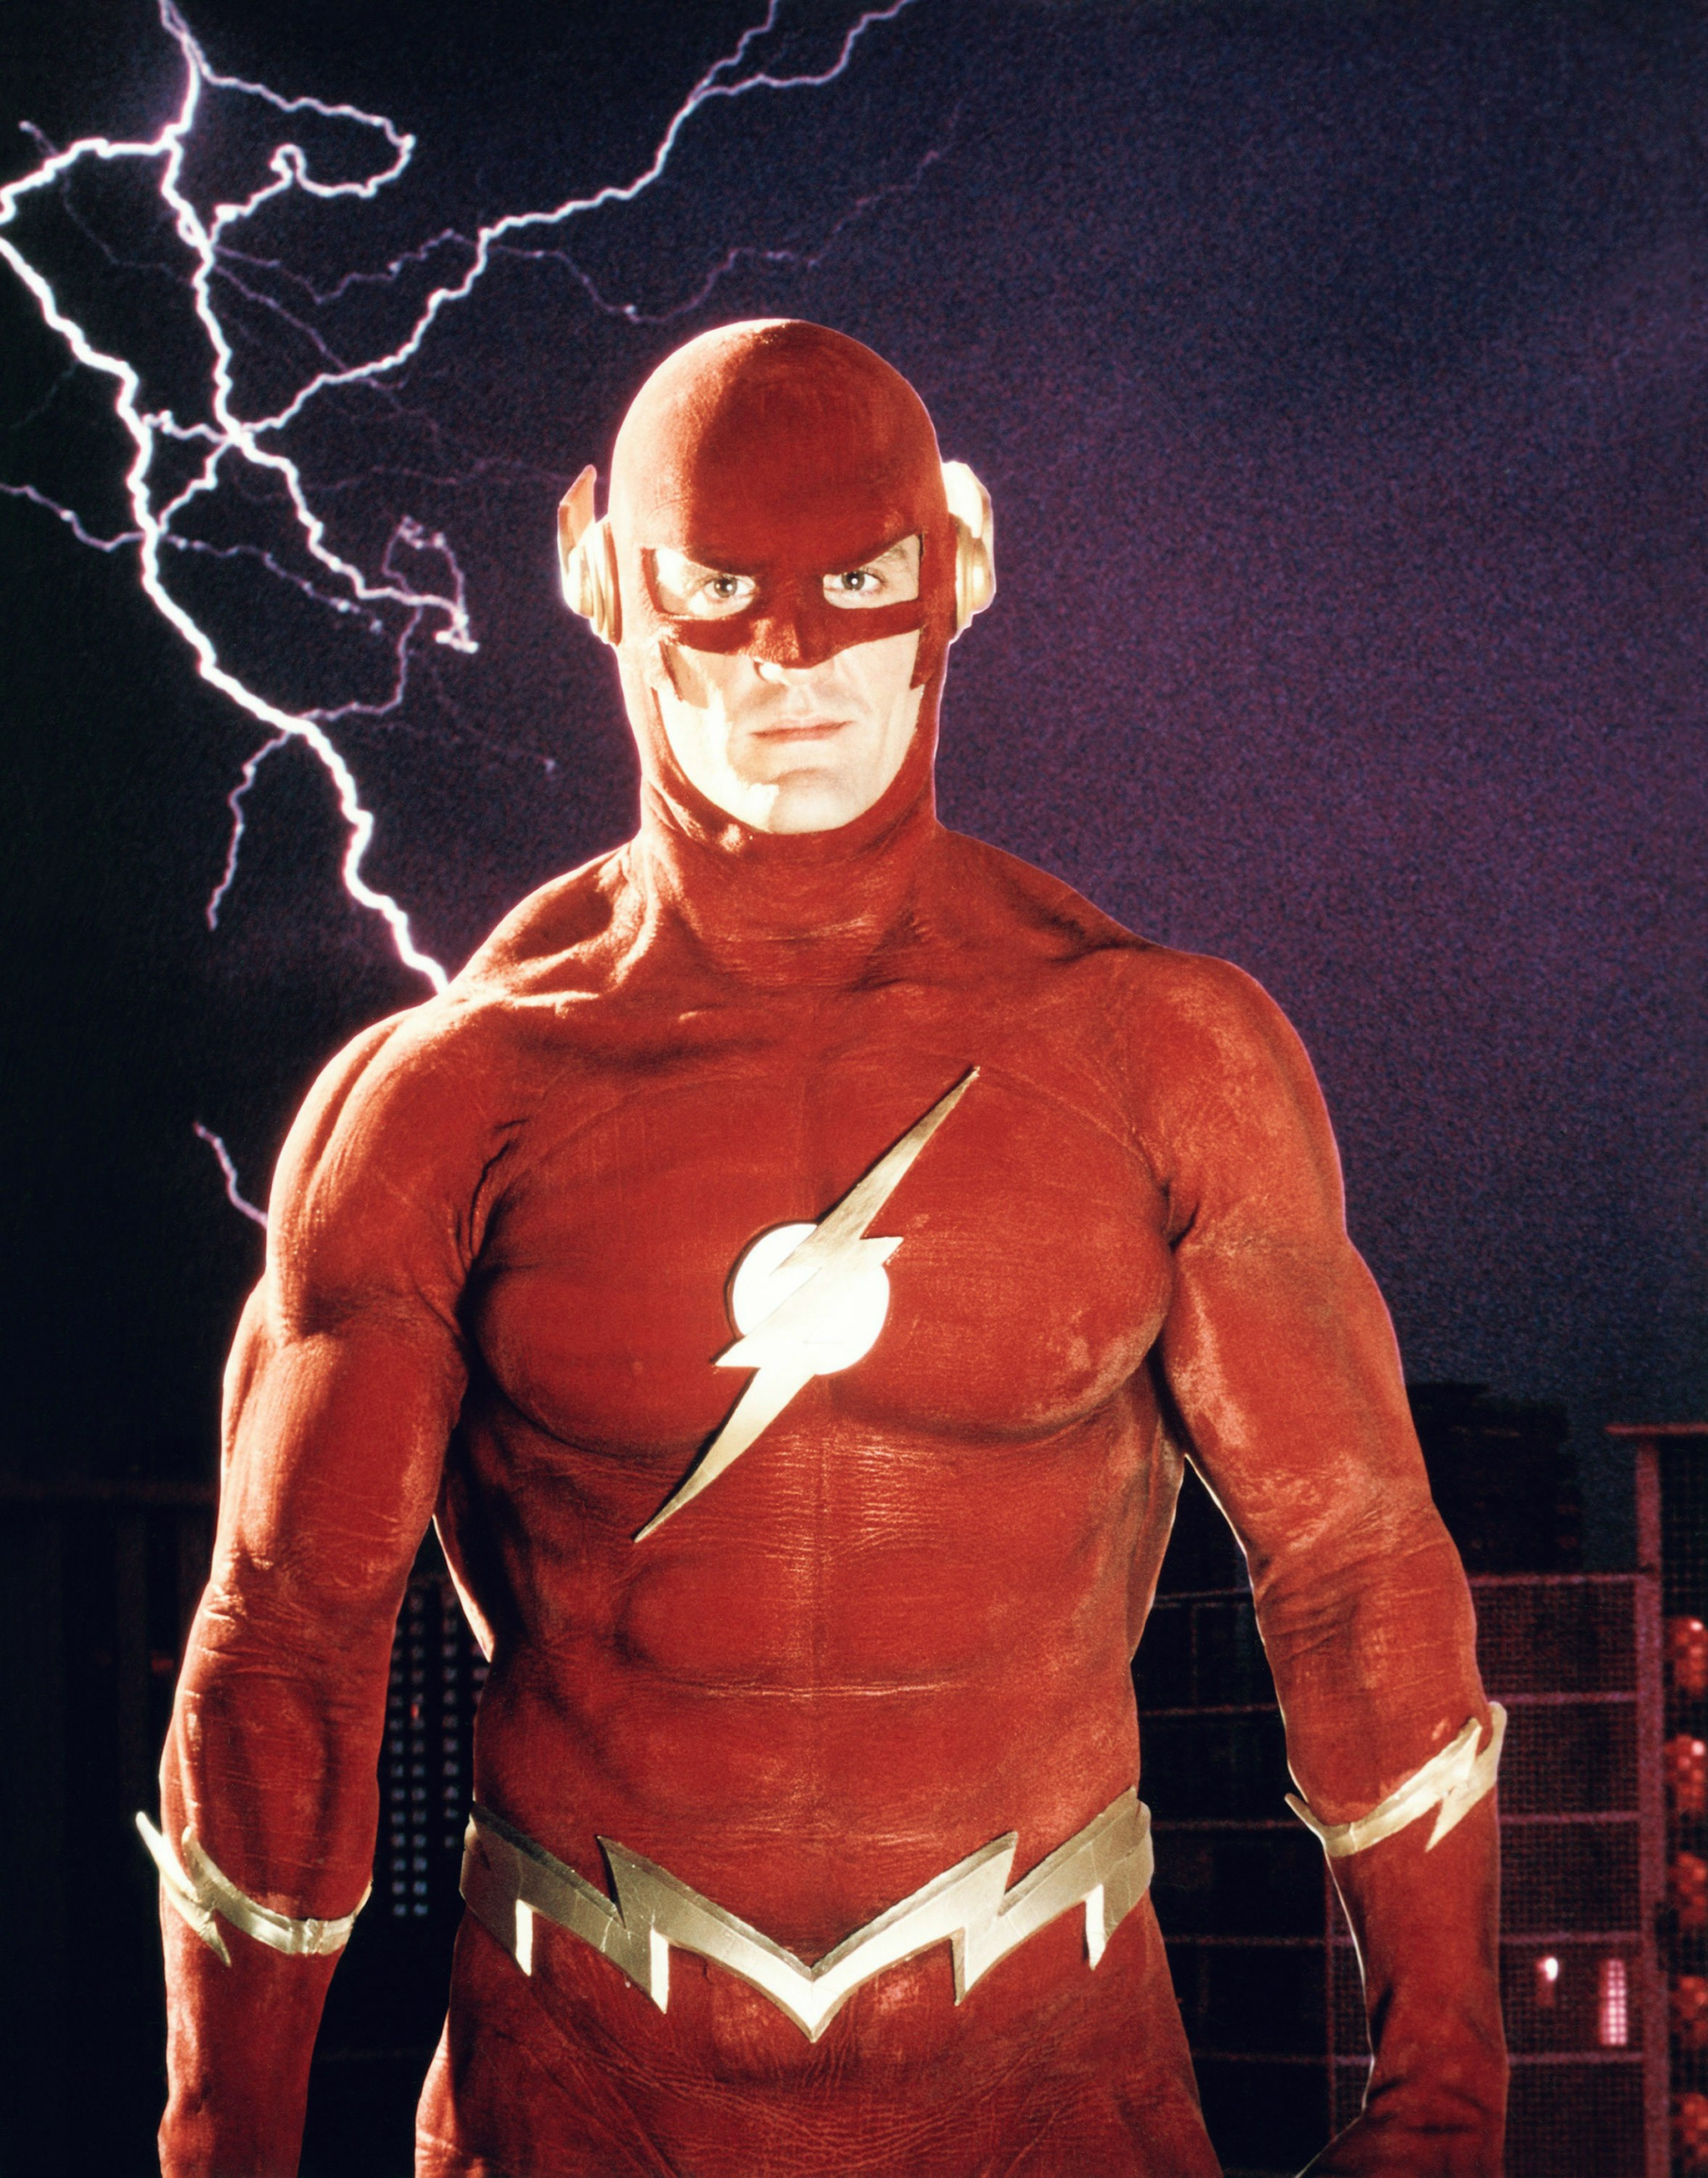 Wesley Flash Magic Monday Altars: Why Jay Garrick Suiting Up As The Flash Is A Bigger Deal